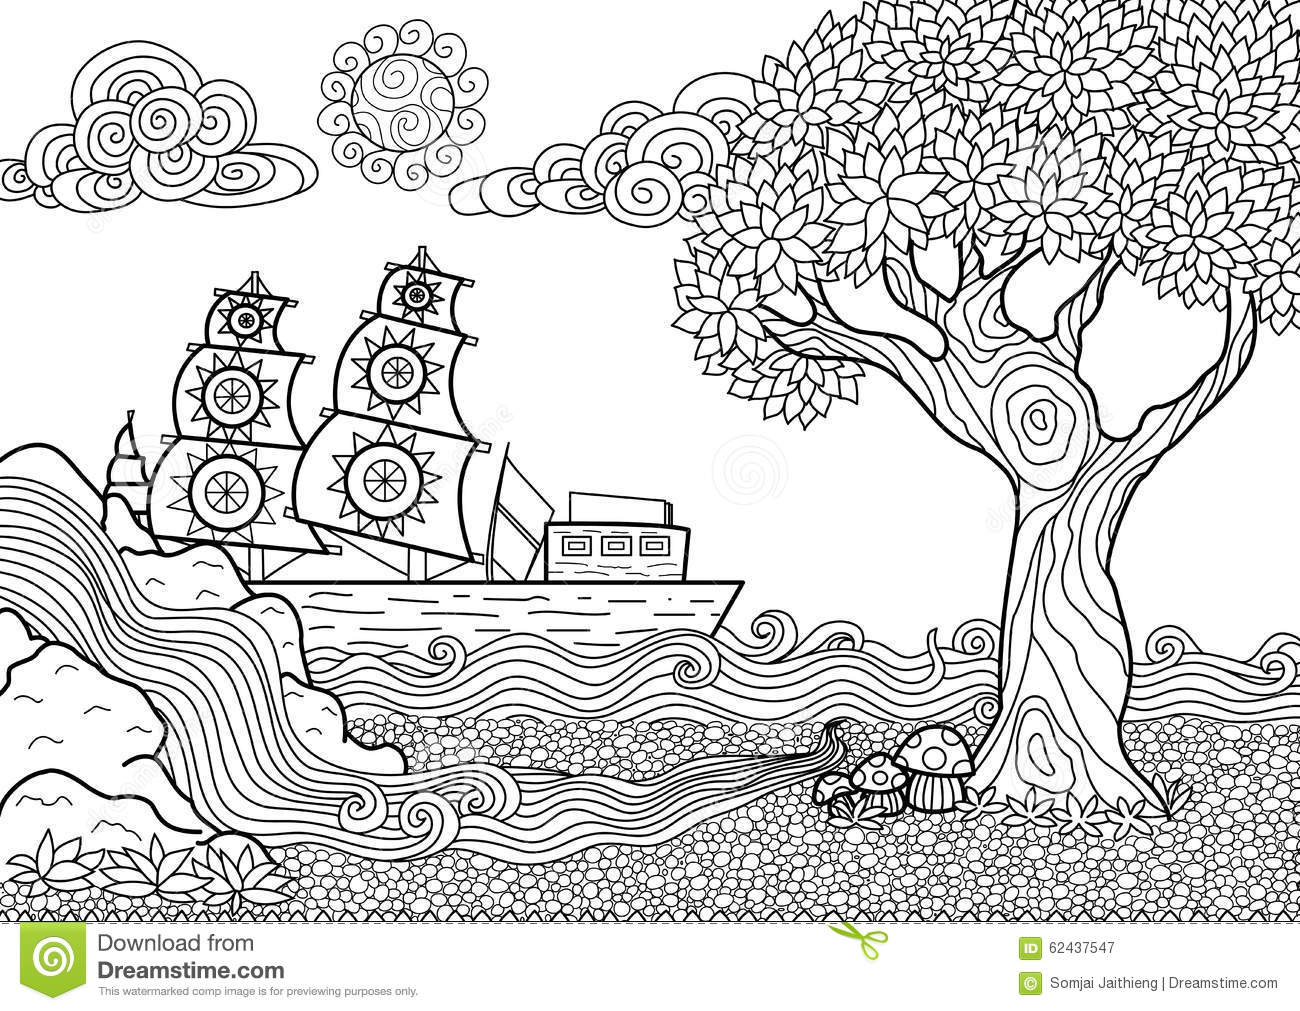 Landscape coloring book stock vector Illustration of american  62437547